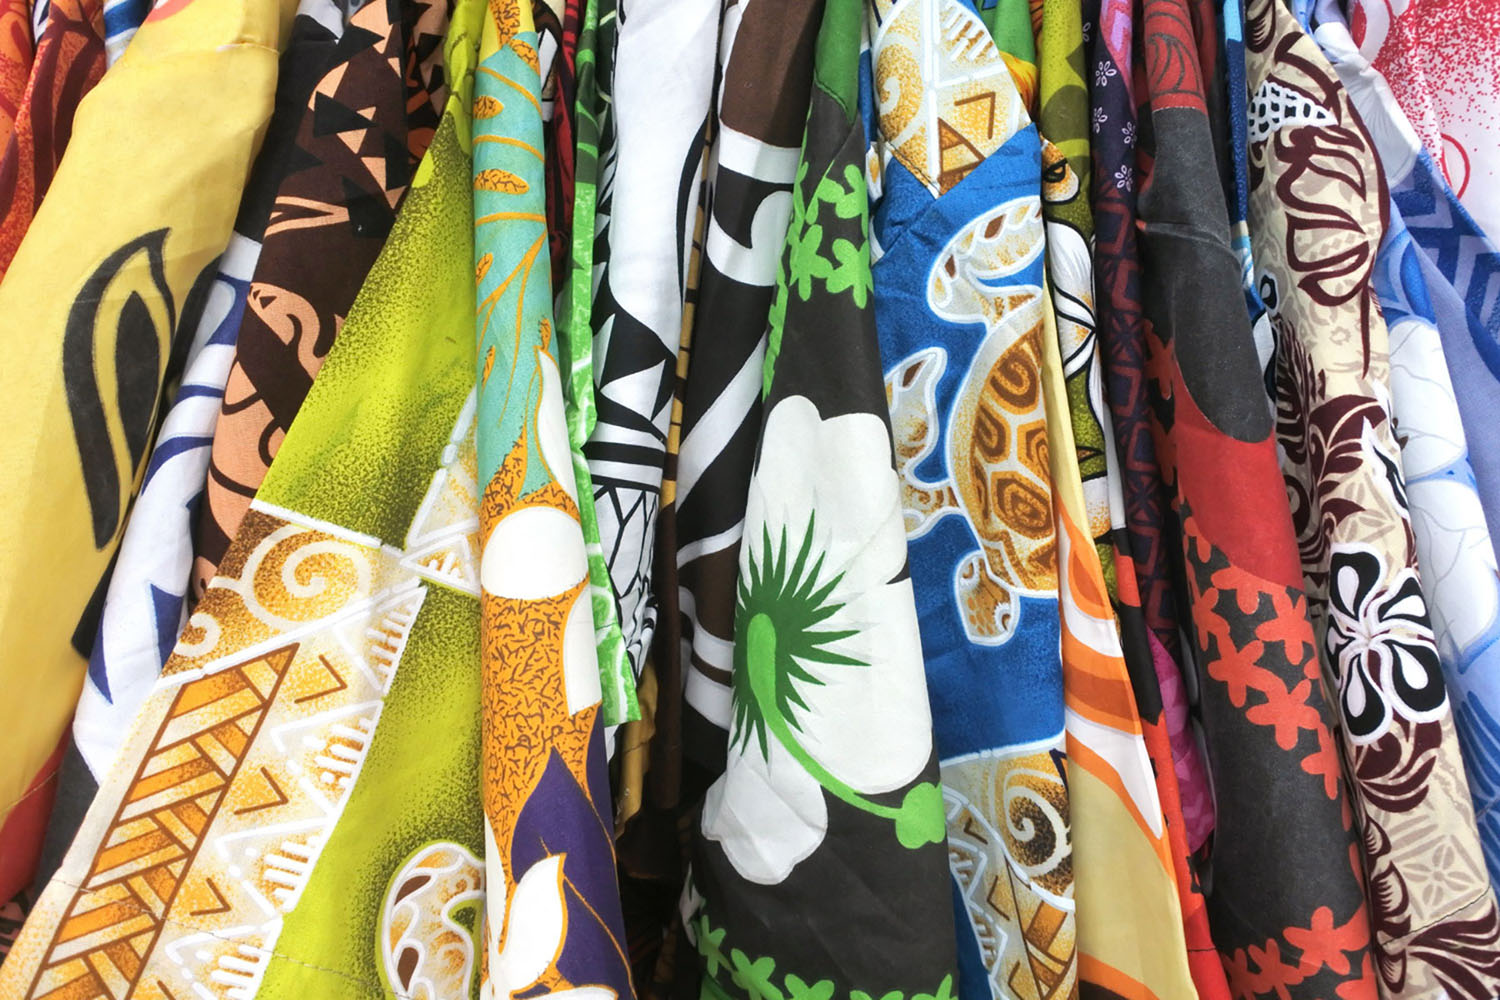 Colorful shirts with island patterns for sale in a shopping distract